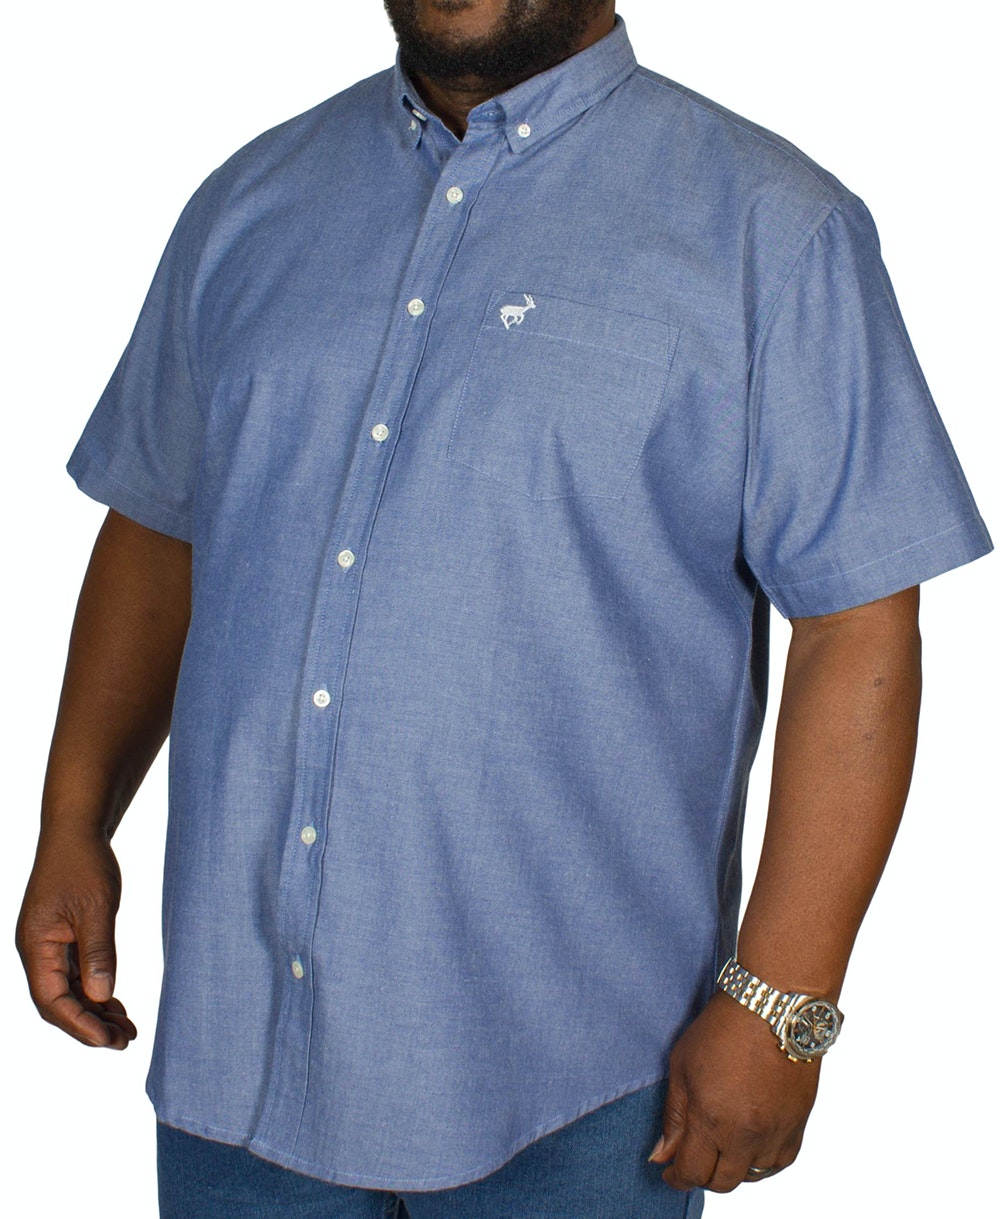 Bigdude Short Sleeve Oxford Shirt Denim